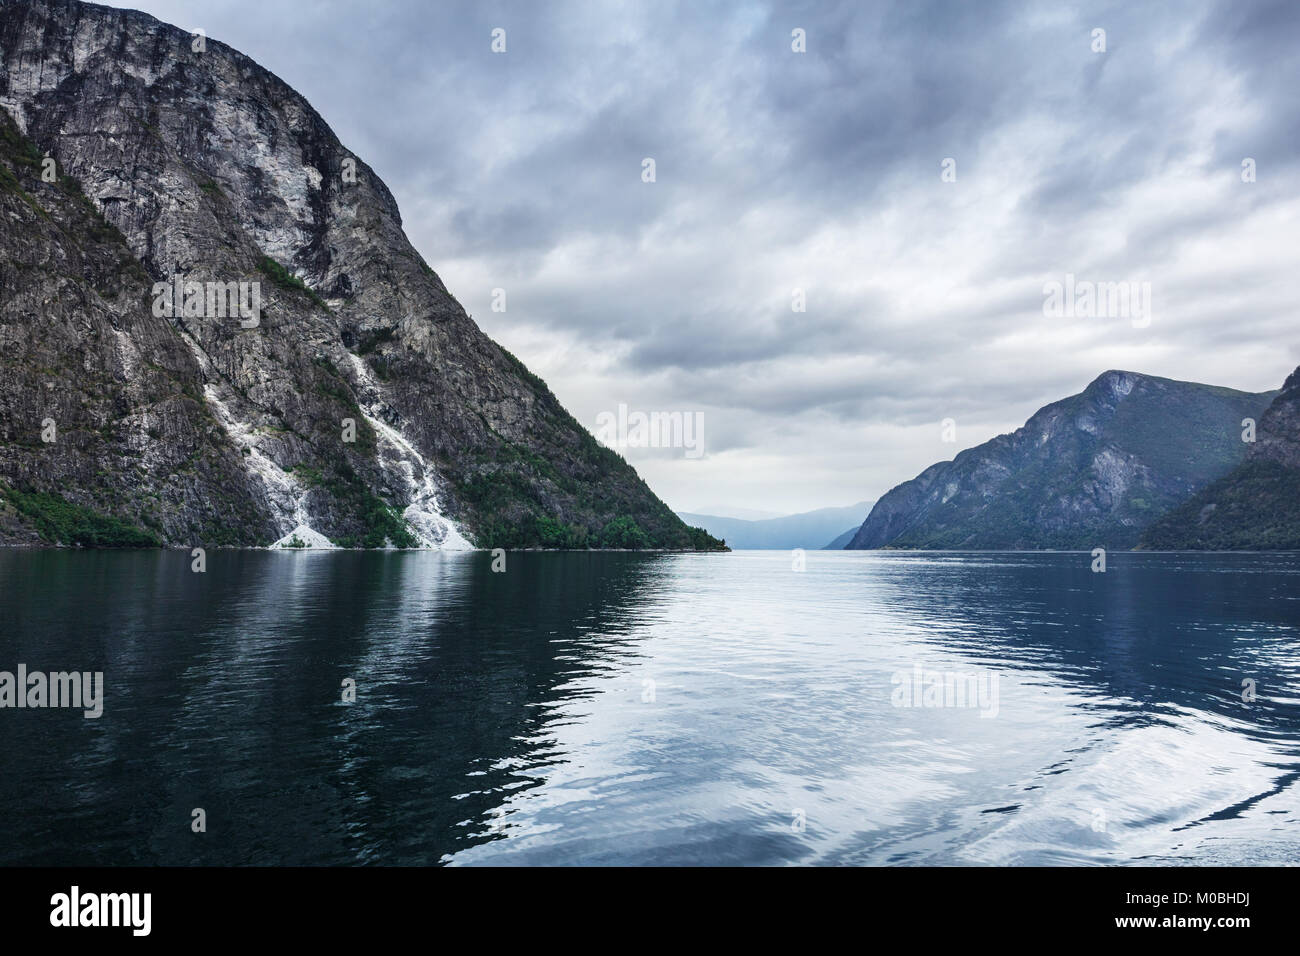 view of the Sognefjord, Norway - Stock Image